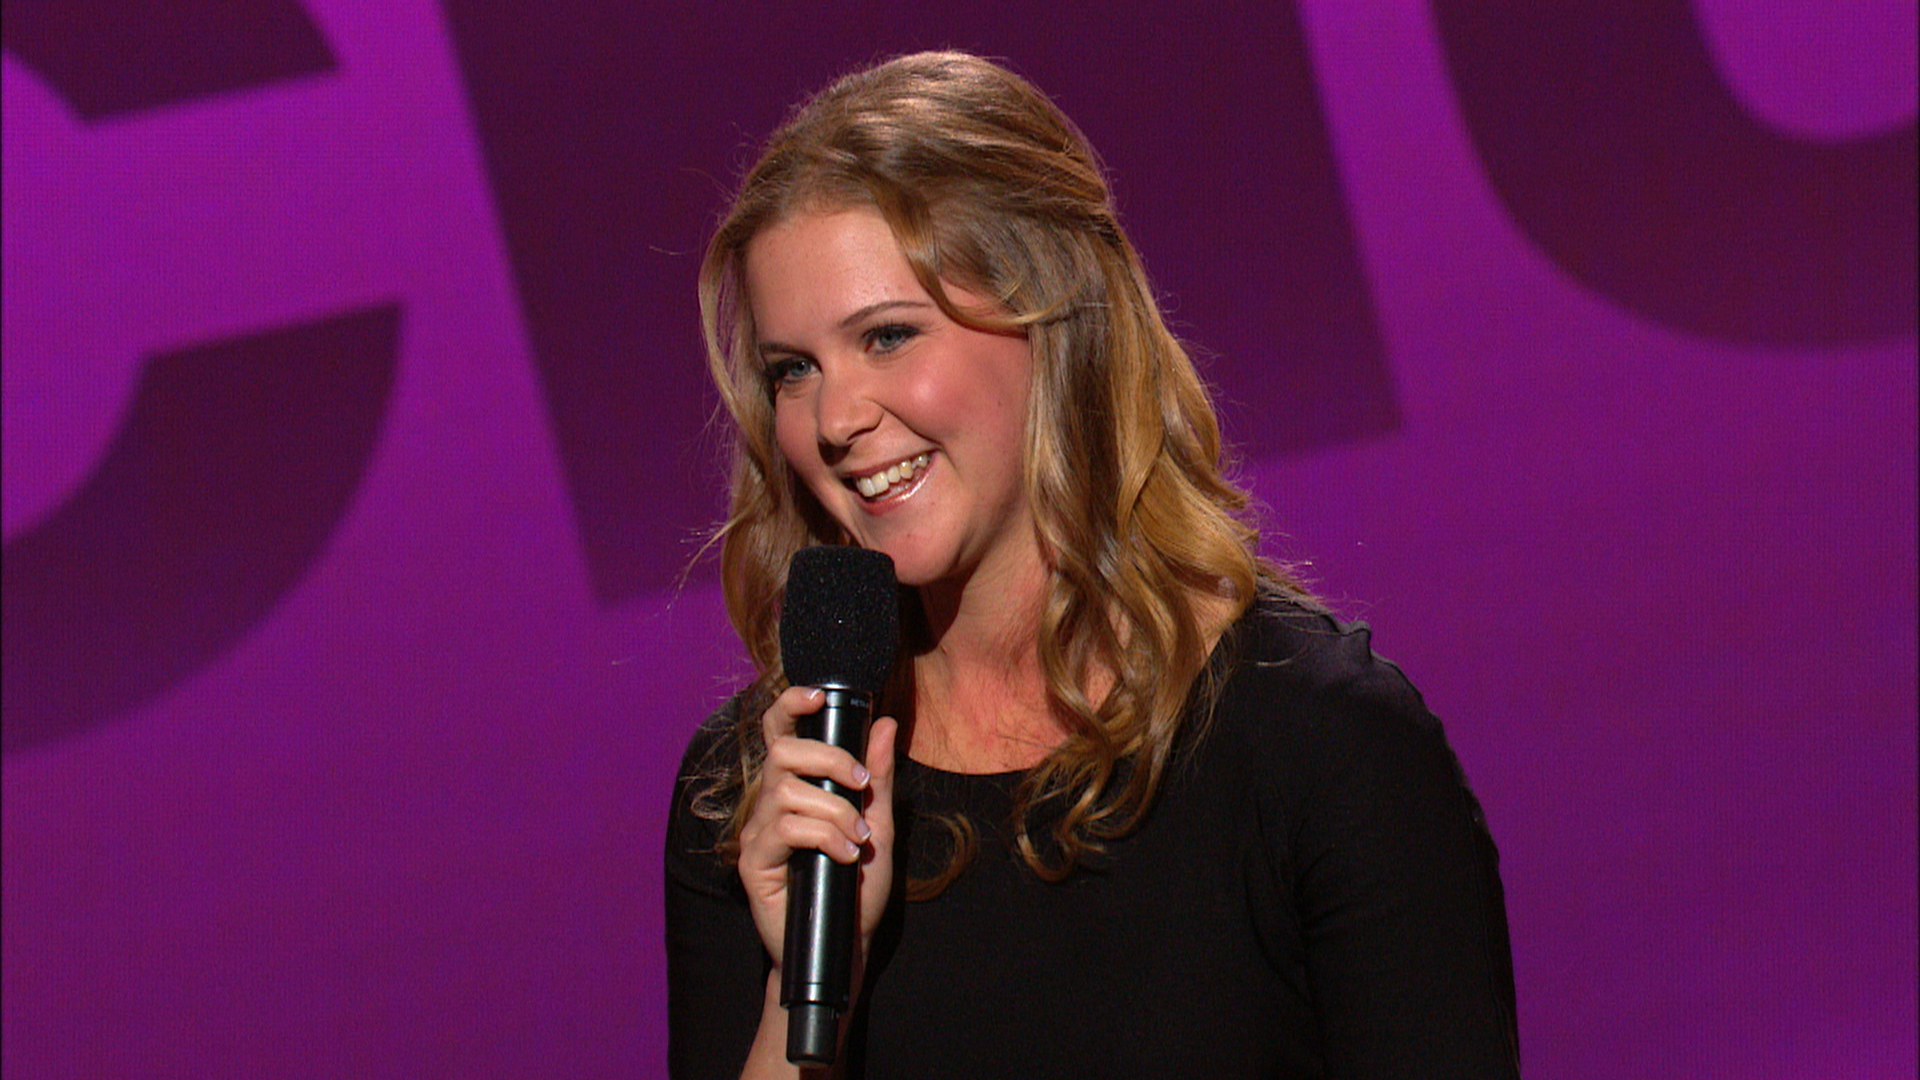 Amy Schumer Stand Up - Whatsapp Forwards, Jokes, Riddles